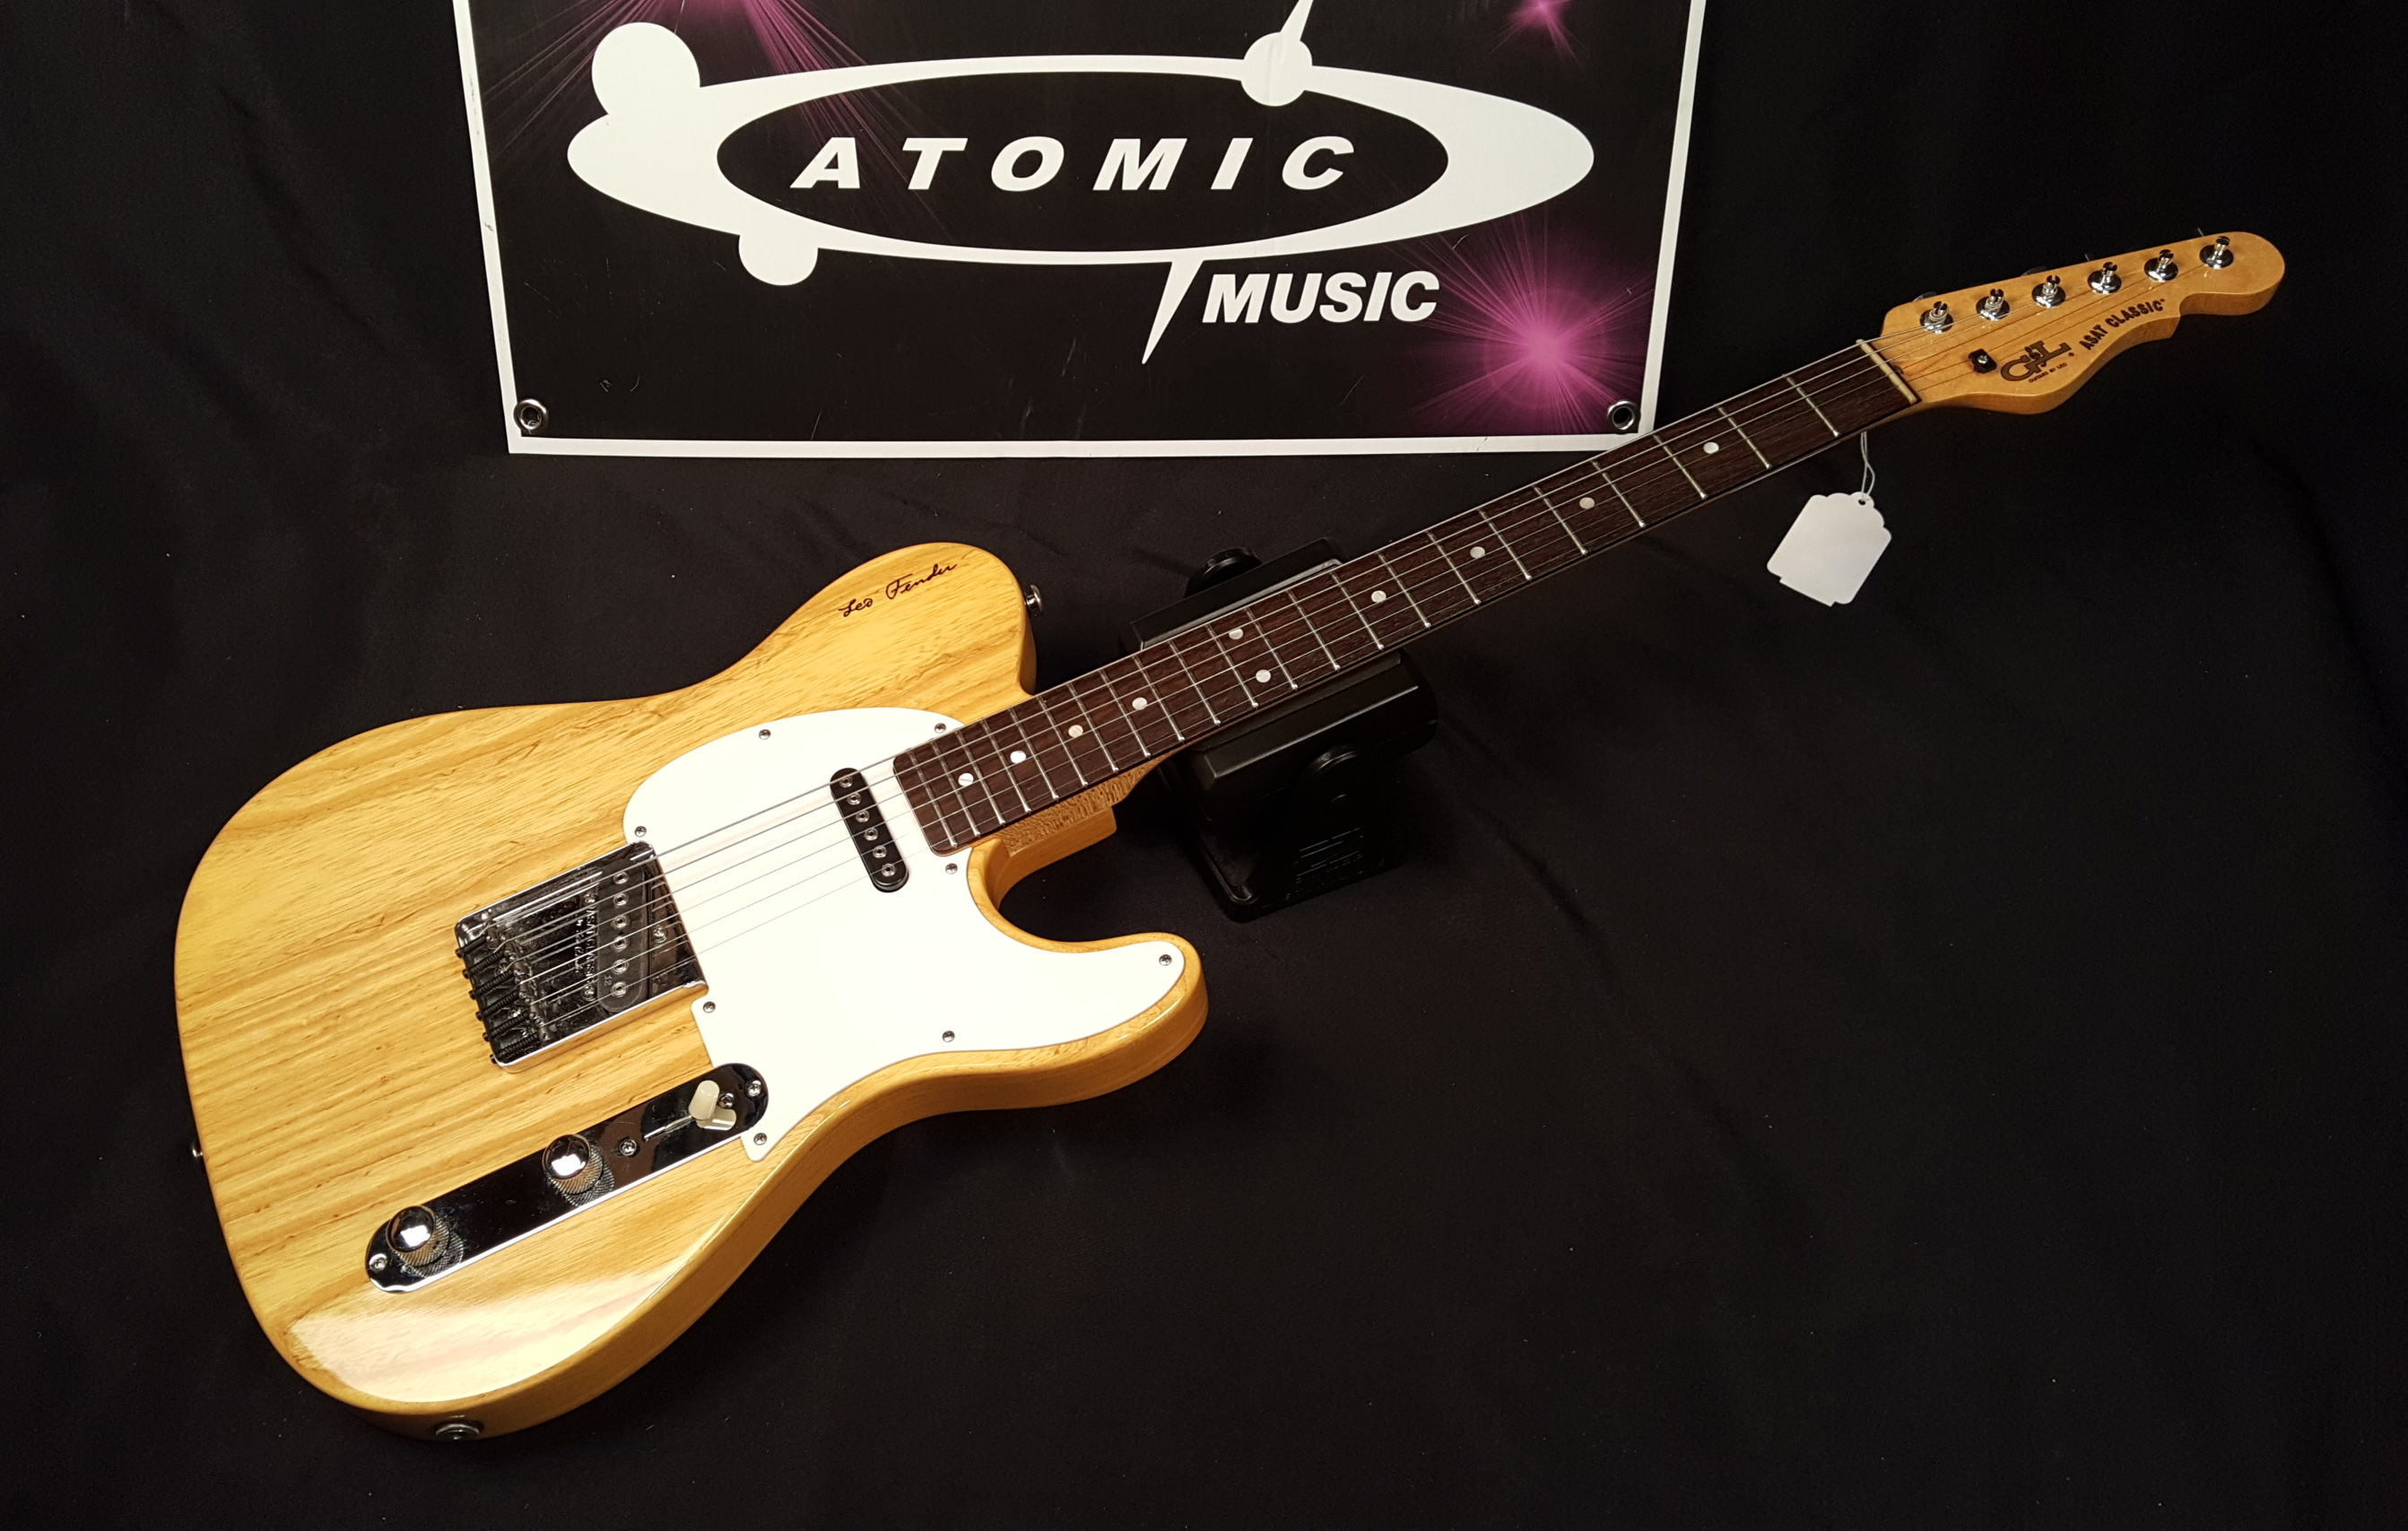 1991 G&L ASAT CLASSIC SIGNATURE ELECTRIC GUITAR - NATURAL GLOSS!